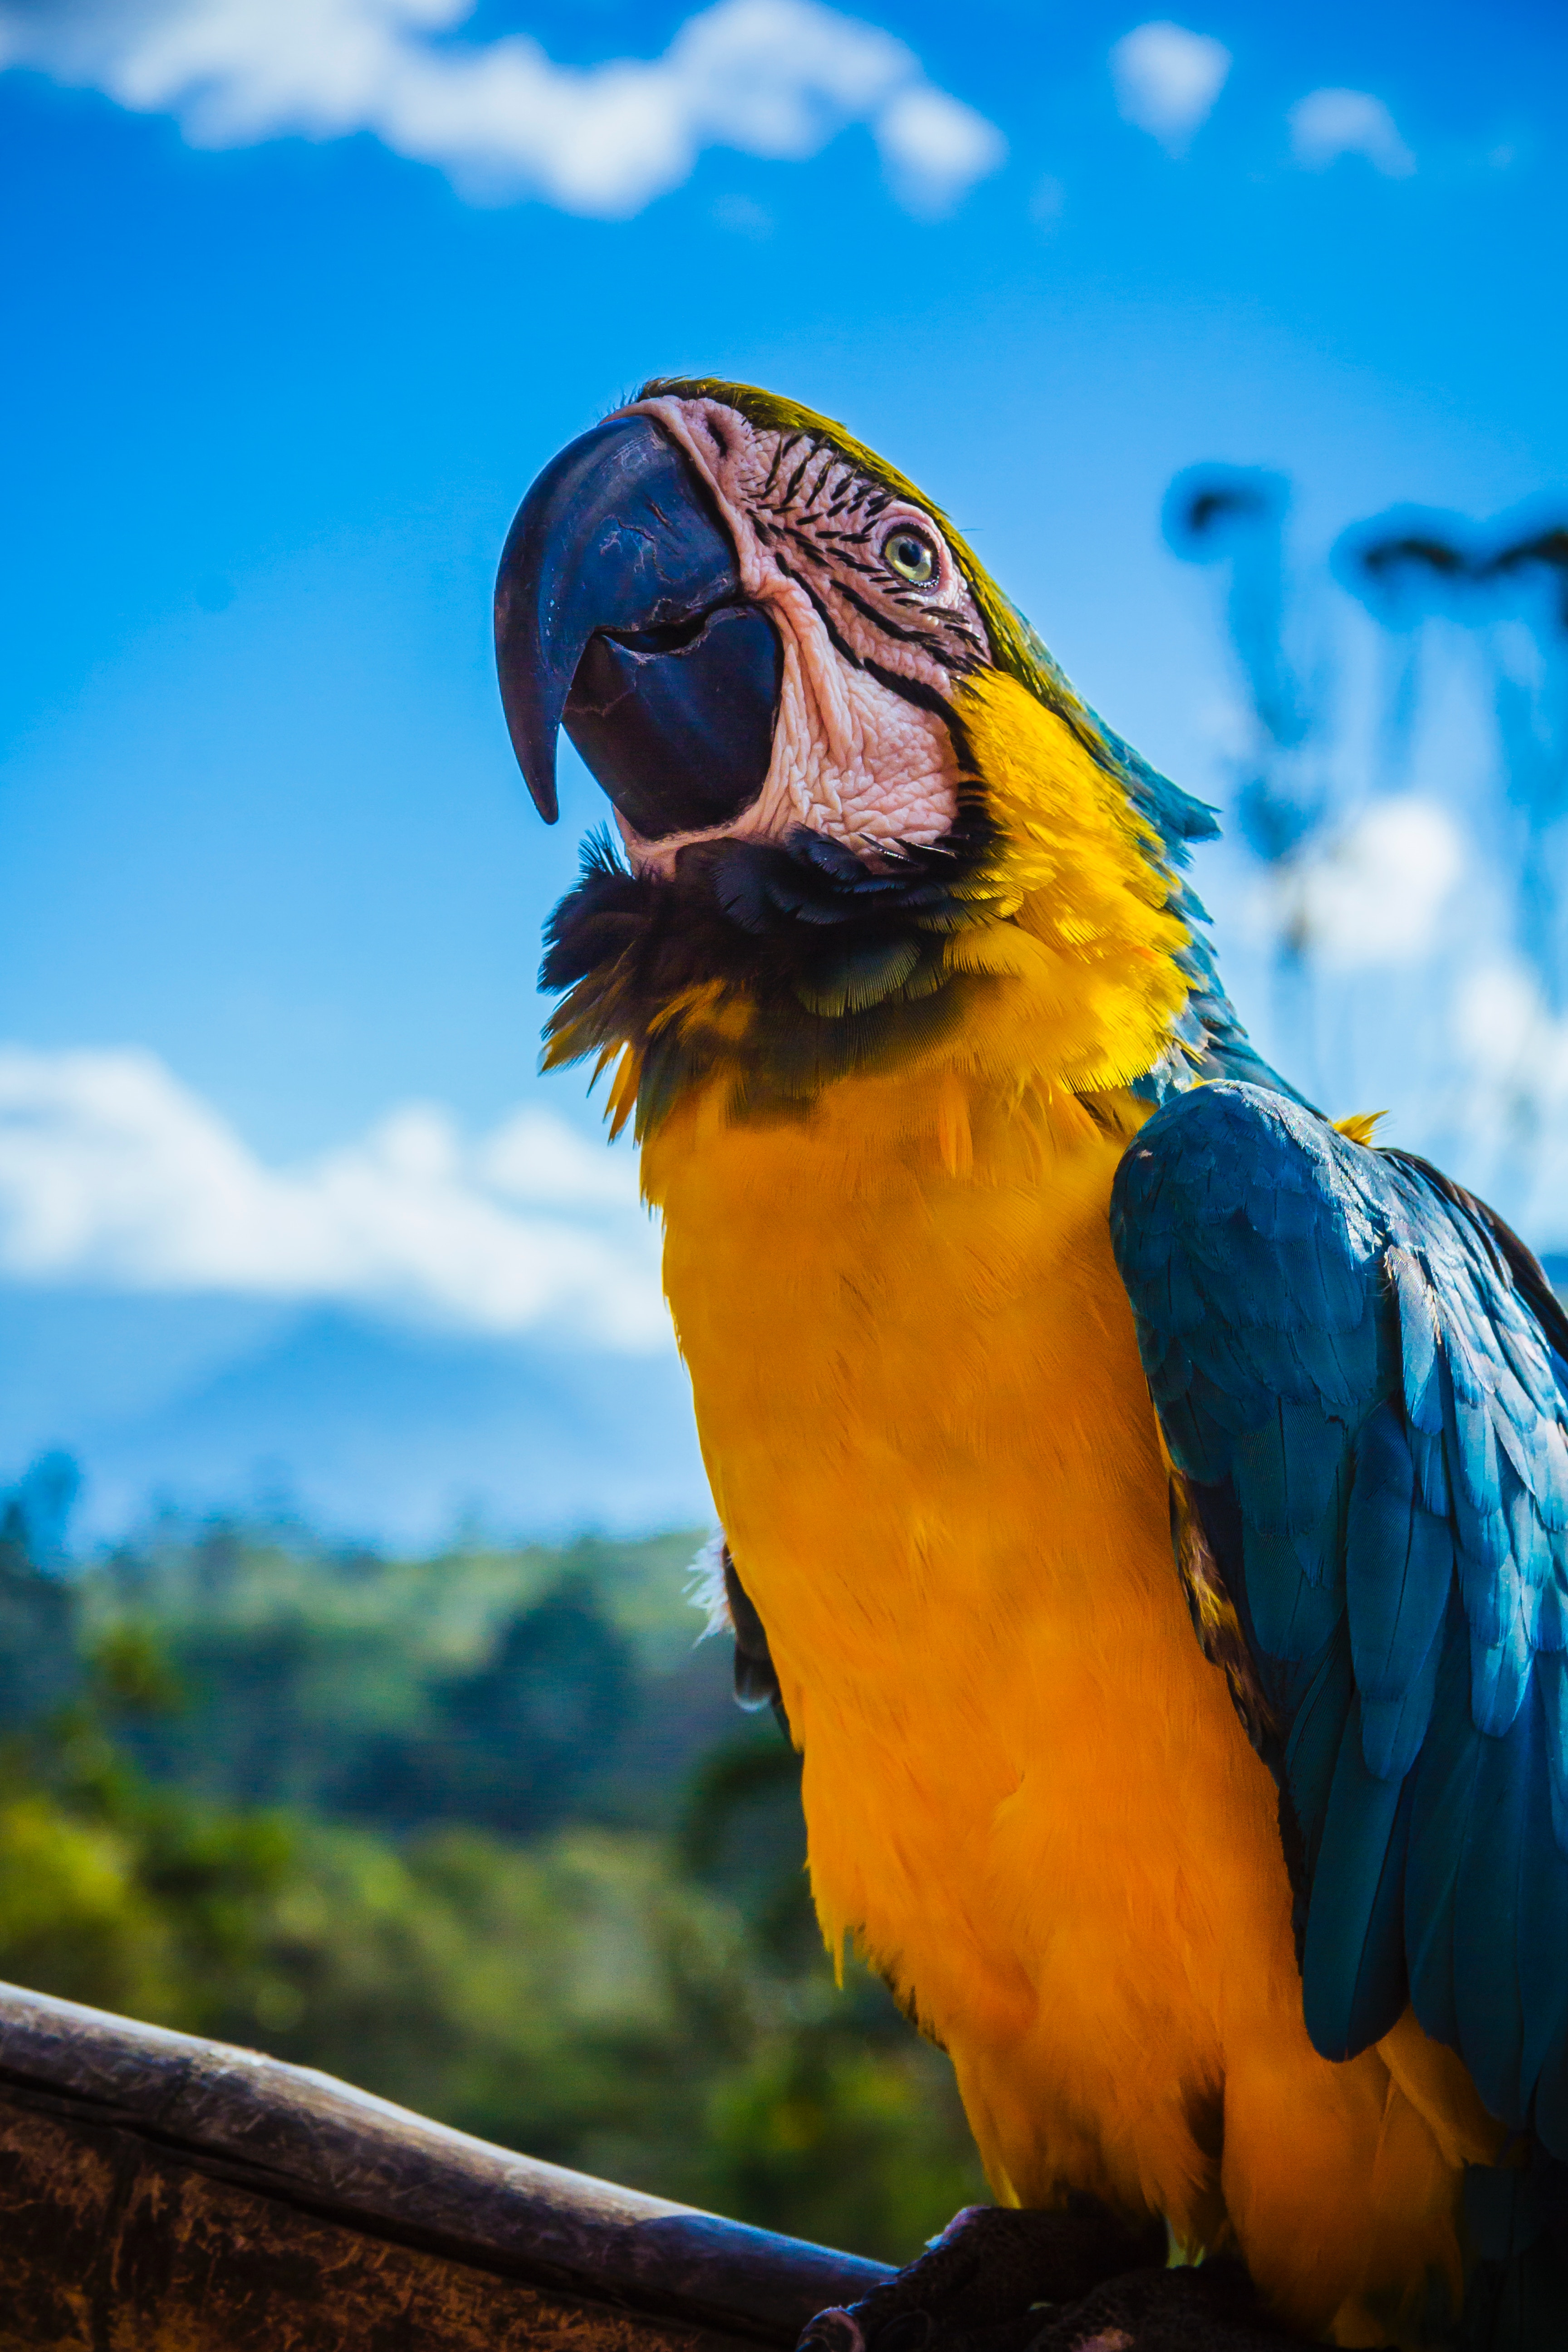 100411 download wallpaper Animals, Parrots, Macaw, Bird, Color, Beak screensavers and pictures for free